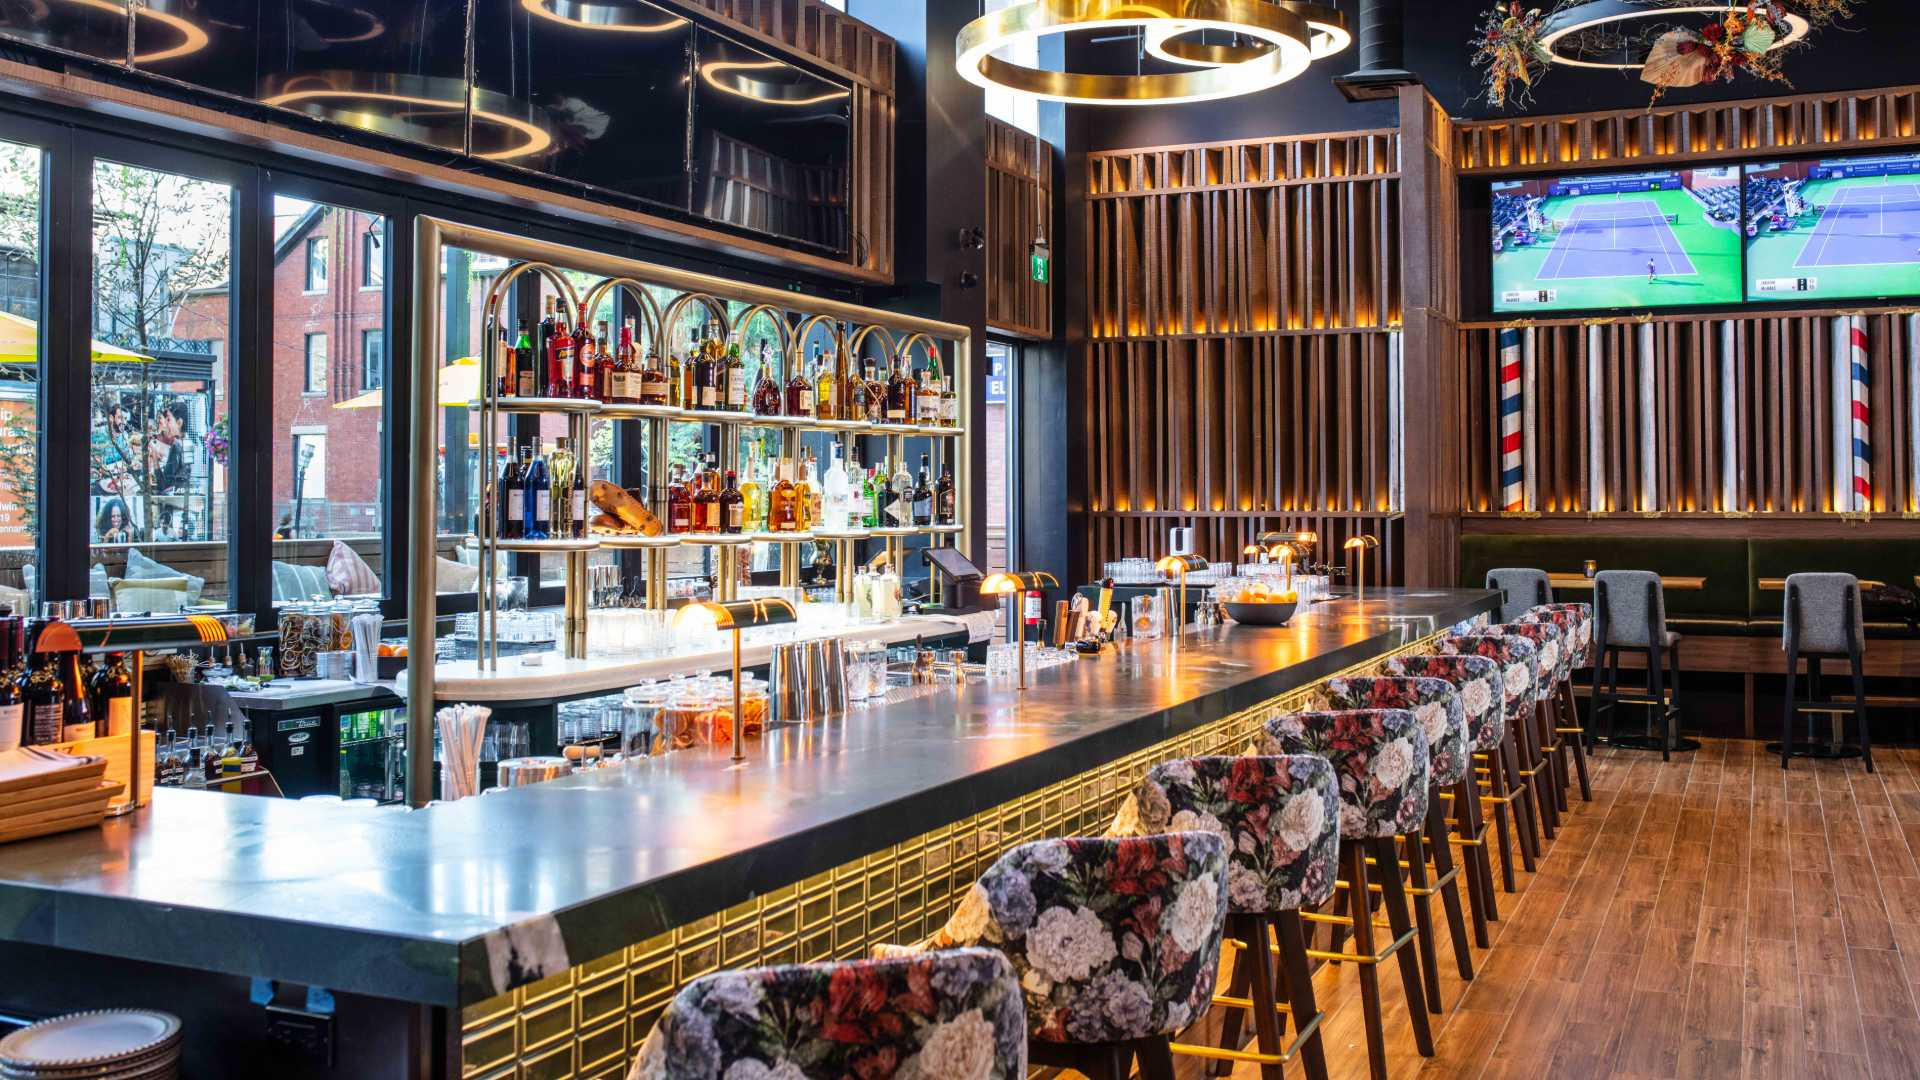 The Pan-Am Lounge at Marked, a new South American restaurant in Toronto